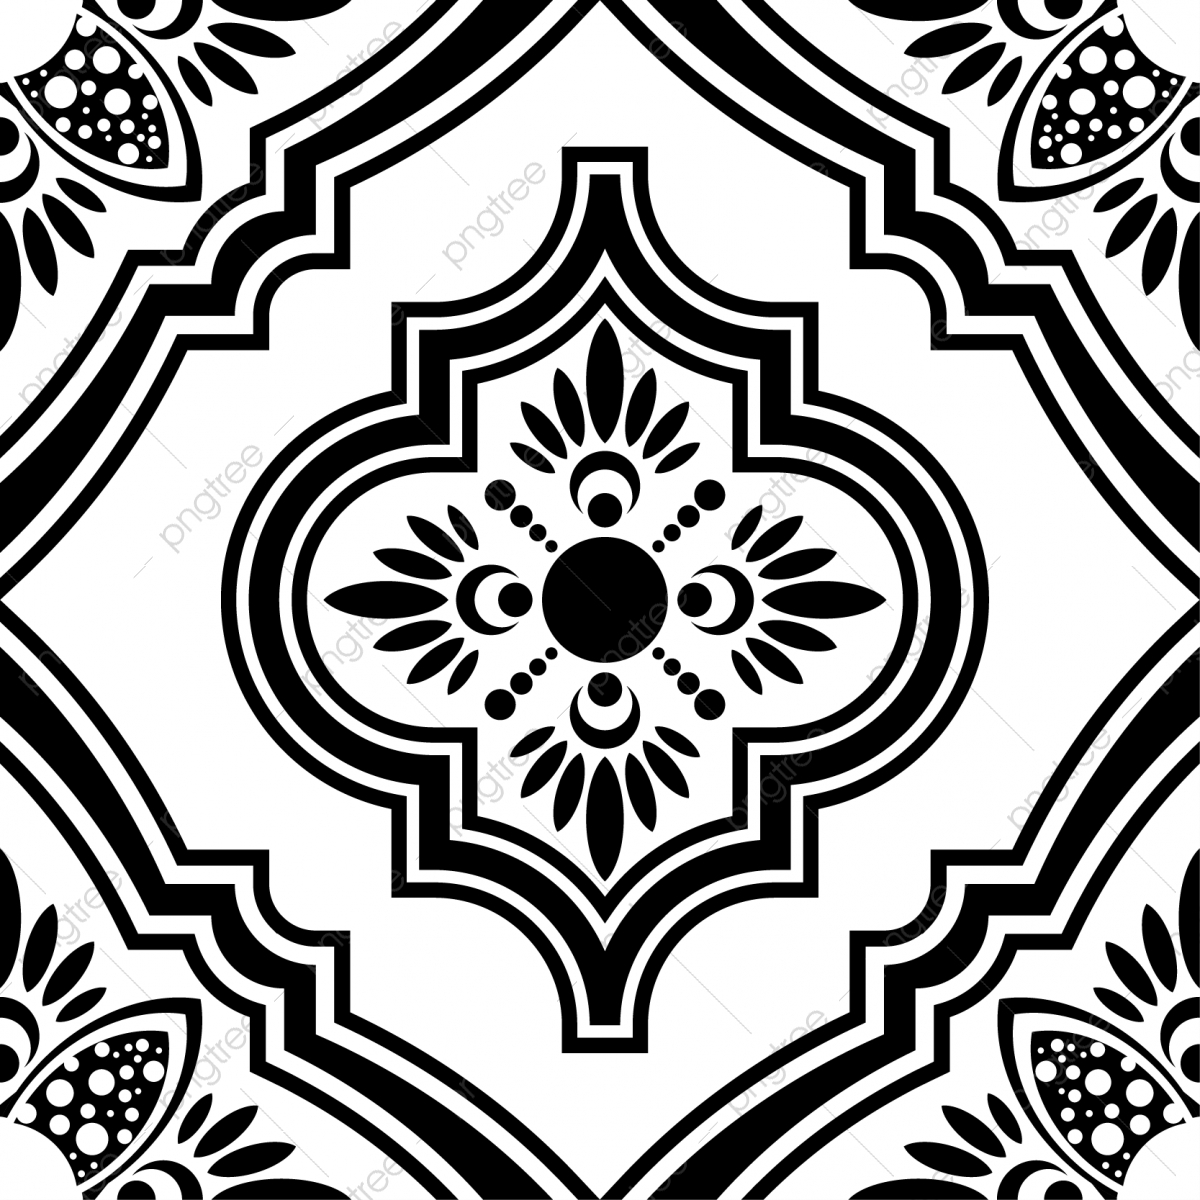 Islamic seamless pattern design. Free clipart turkish tile background black and white